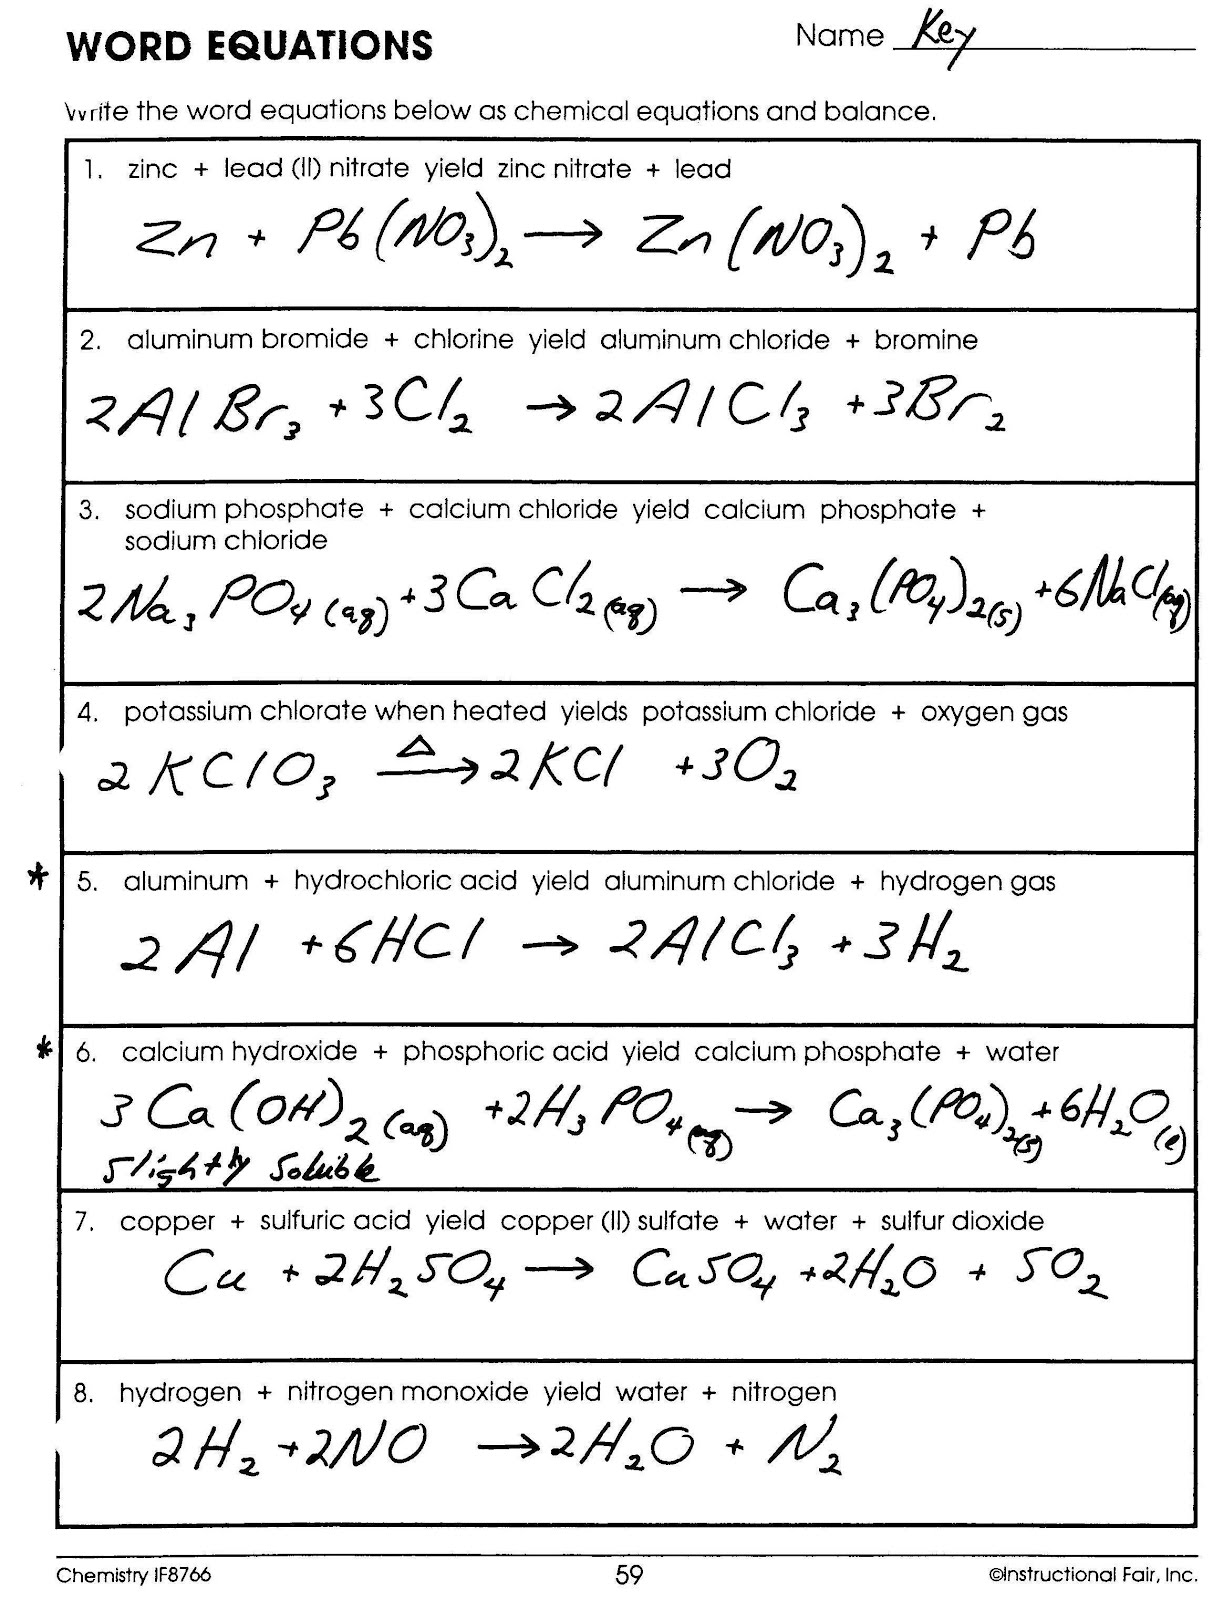 Worksheet Balancing Chemical Equations Answer Key